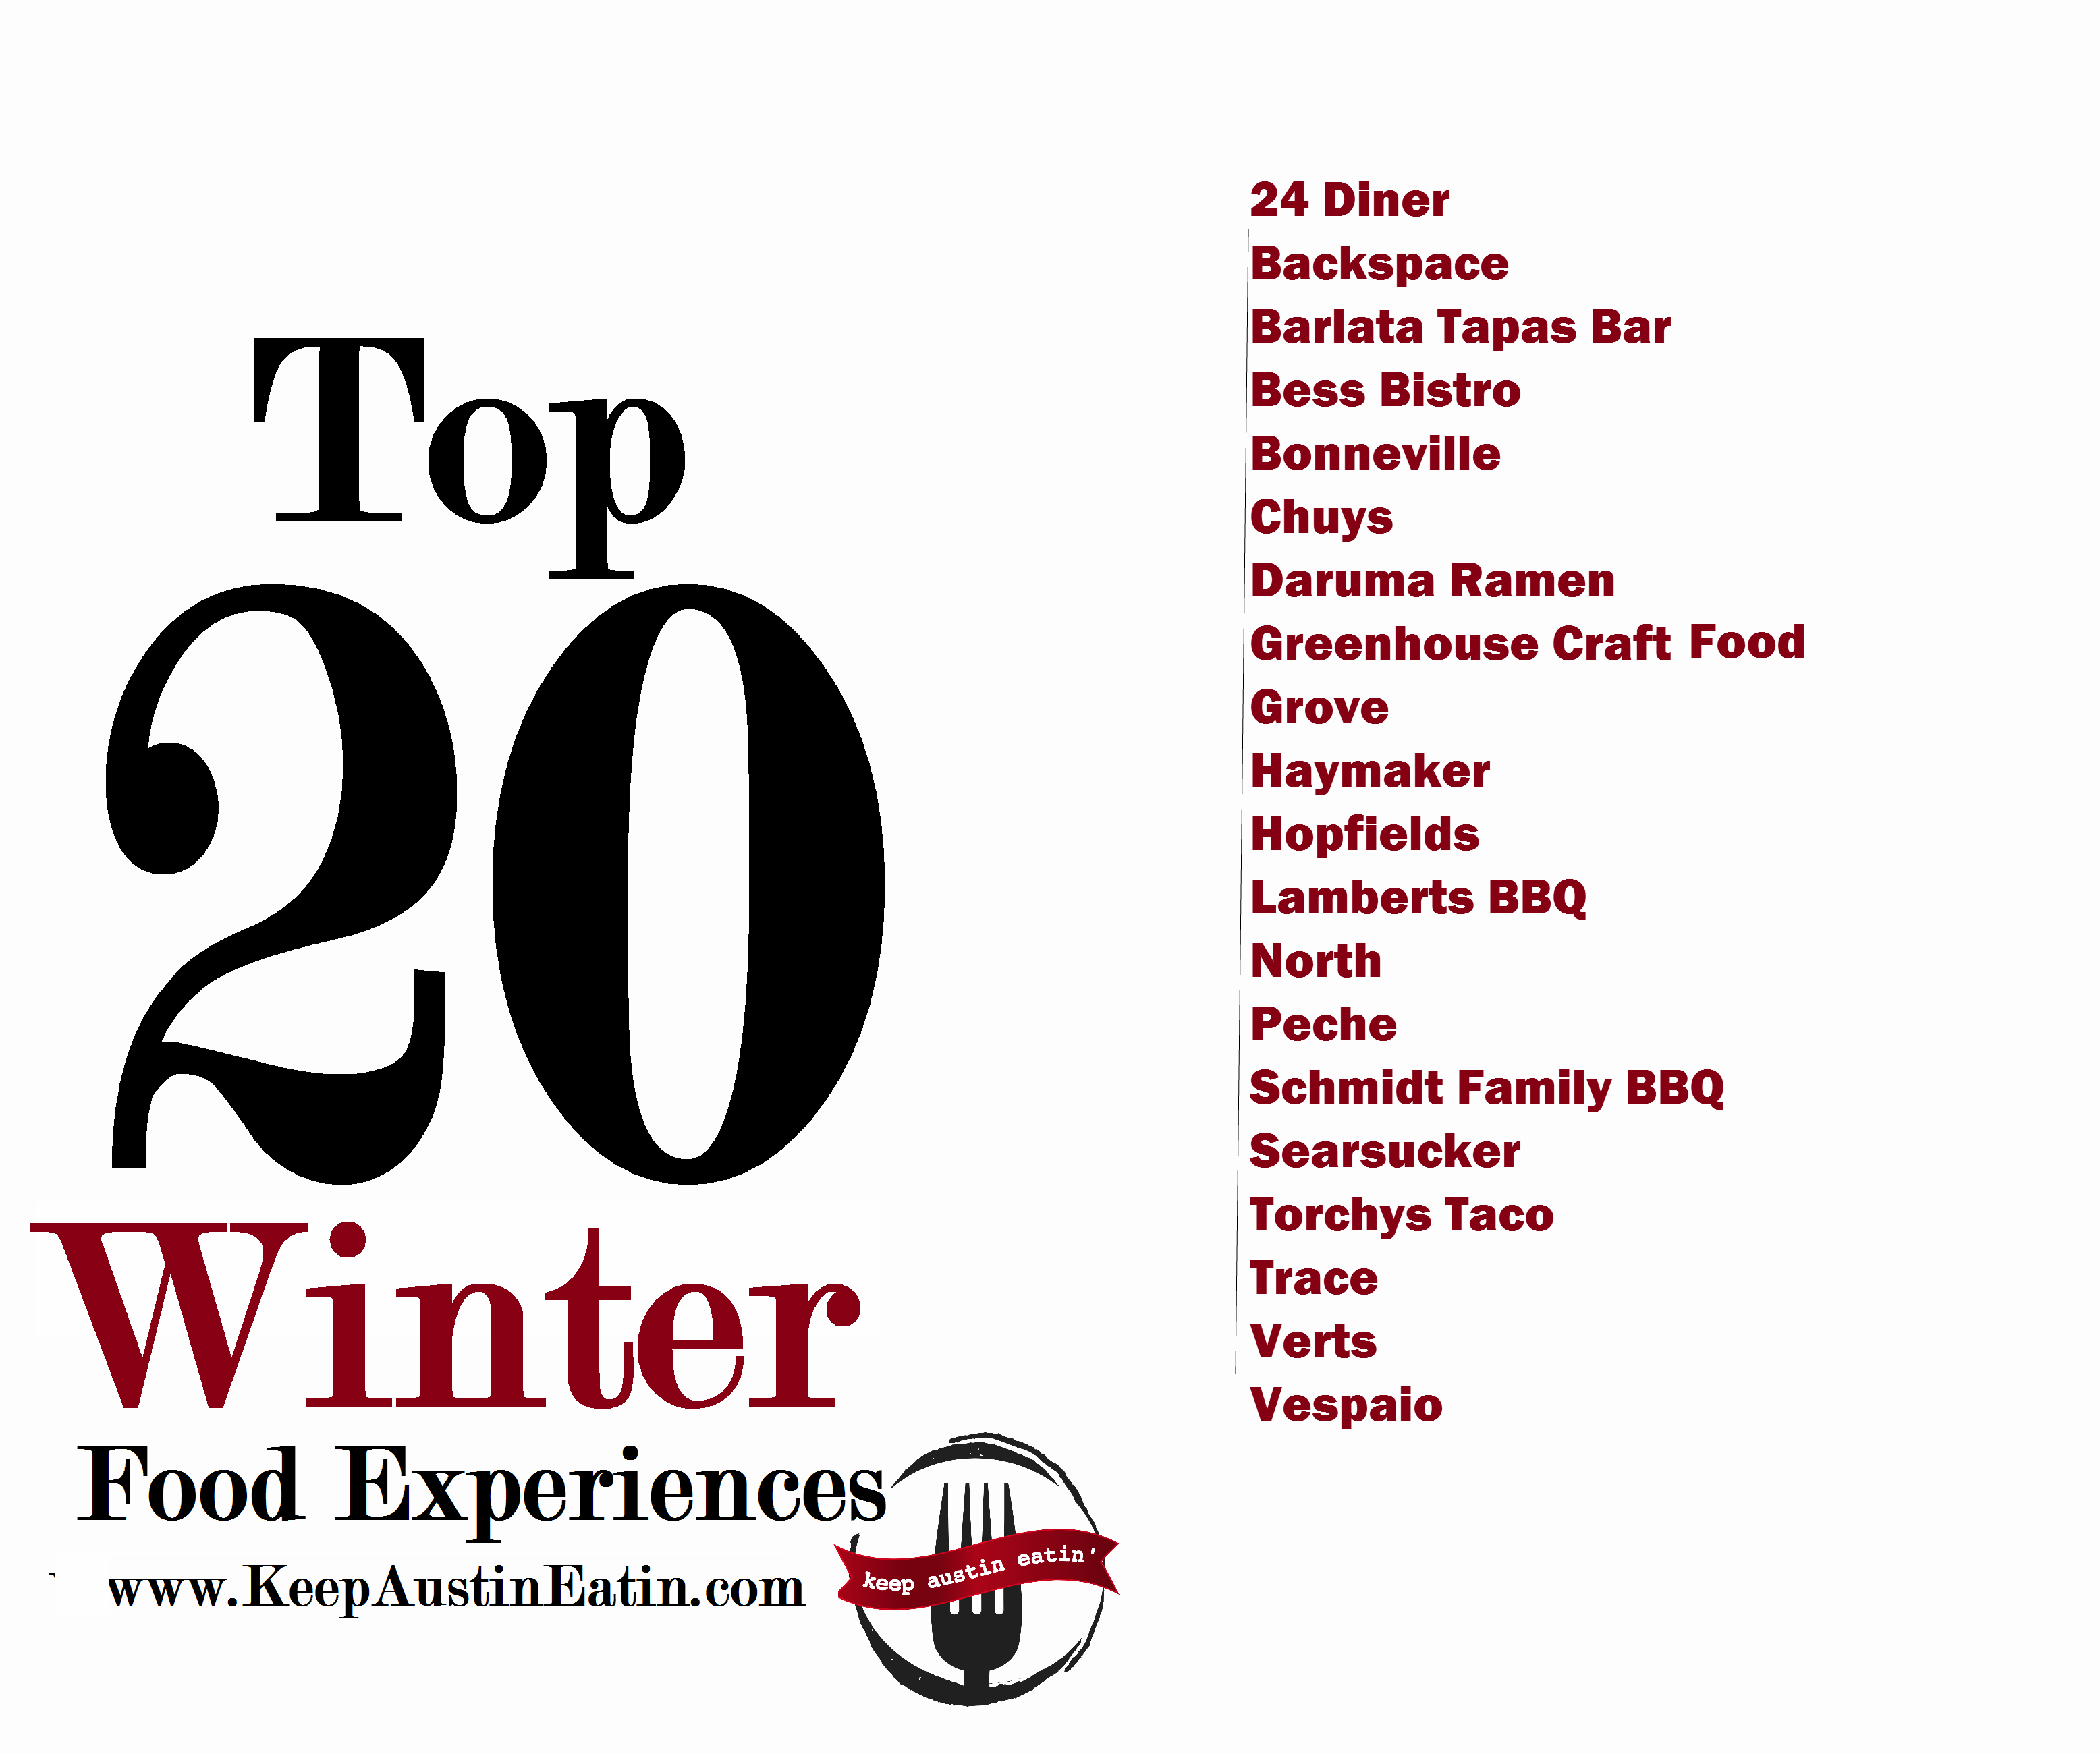 TOP 20 WINTER FOOD EXPERIENCES